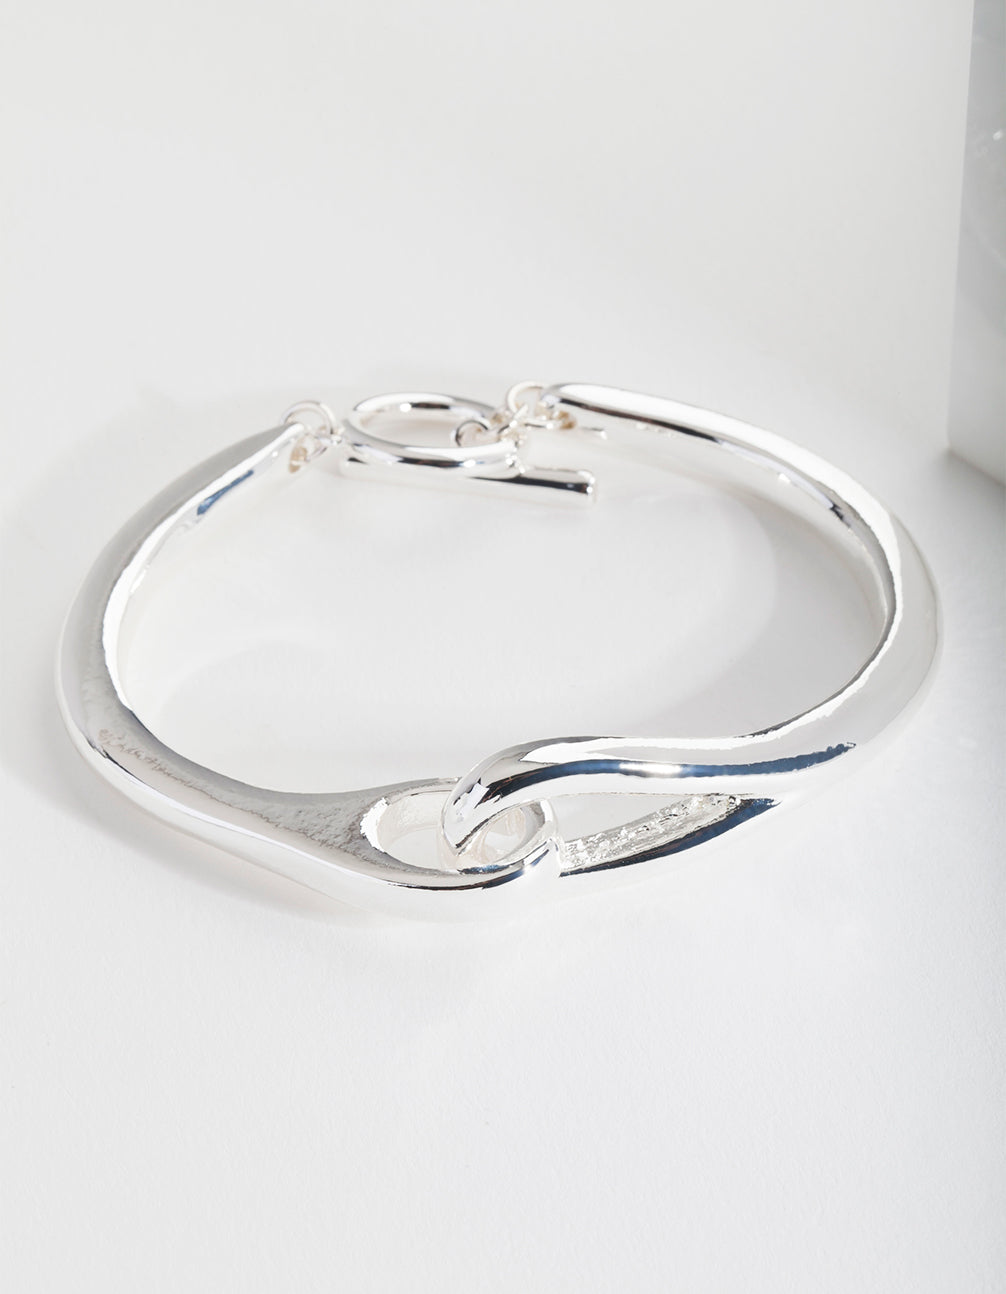 Real Silver Plated Knot T and O Bangle